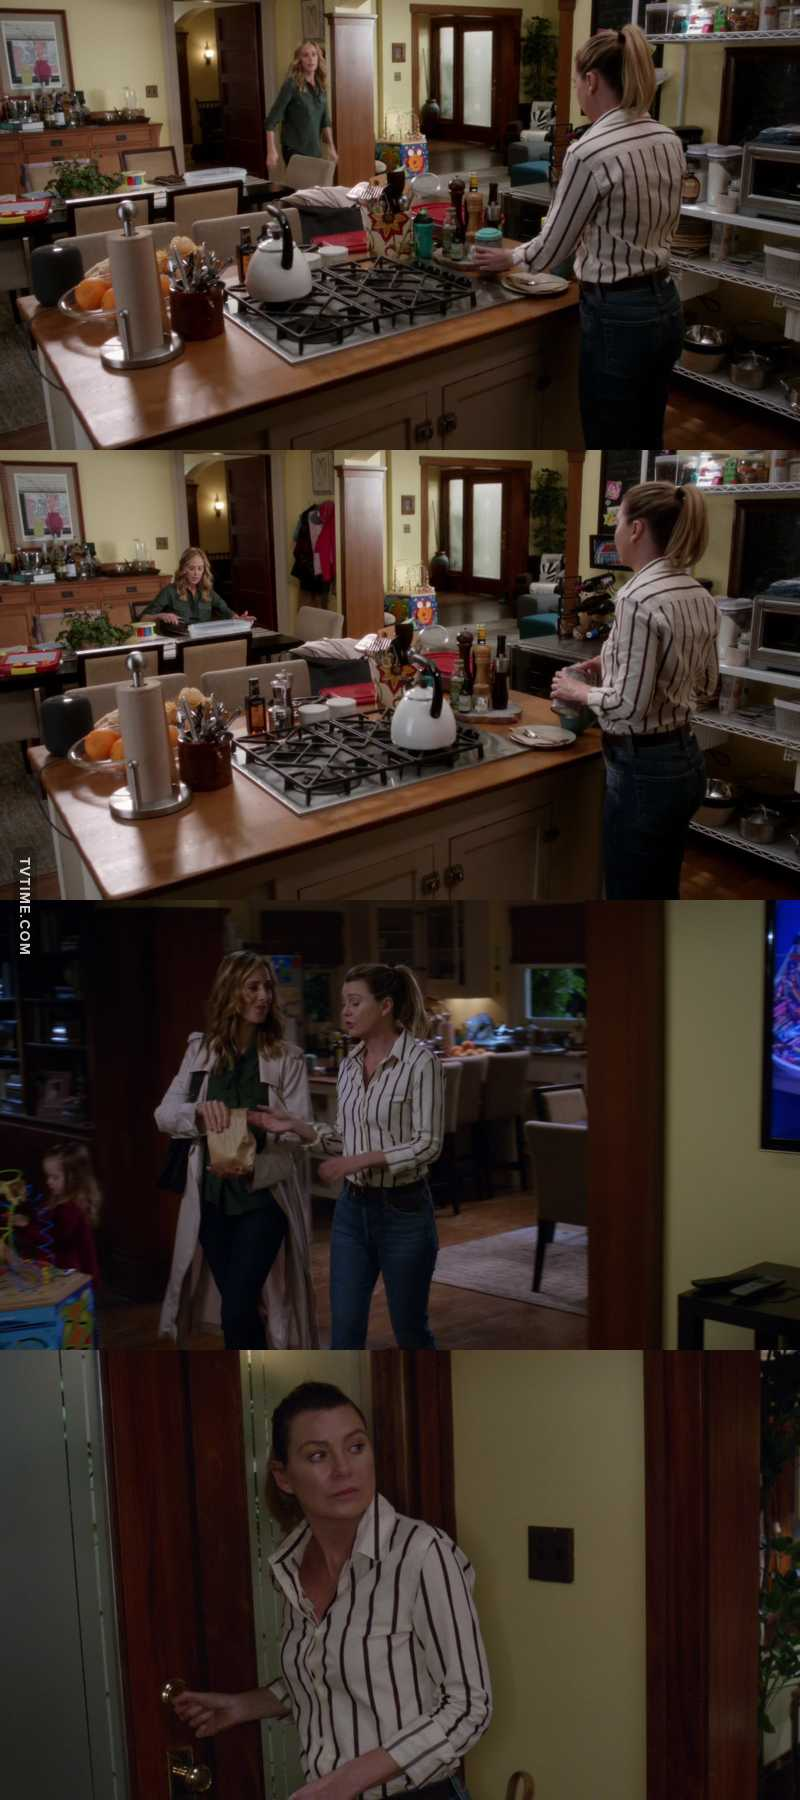 I'm the only one who loved Meredith's outfit?😍